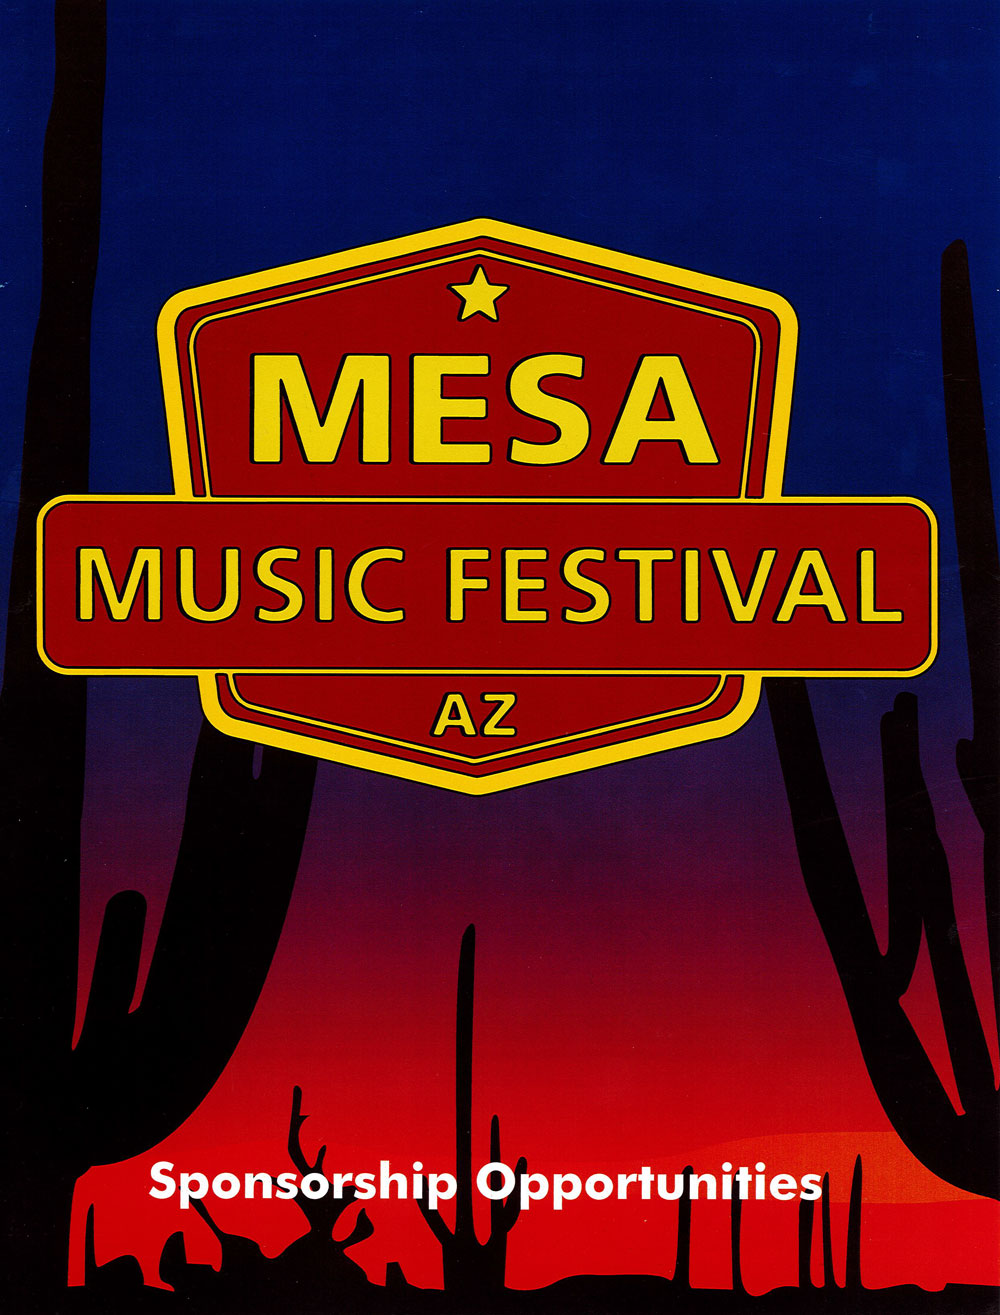 Mesa Music Festival Sponsorship Opportunities